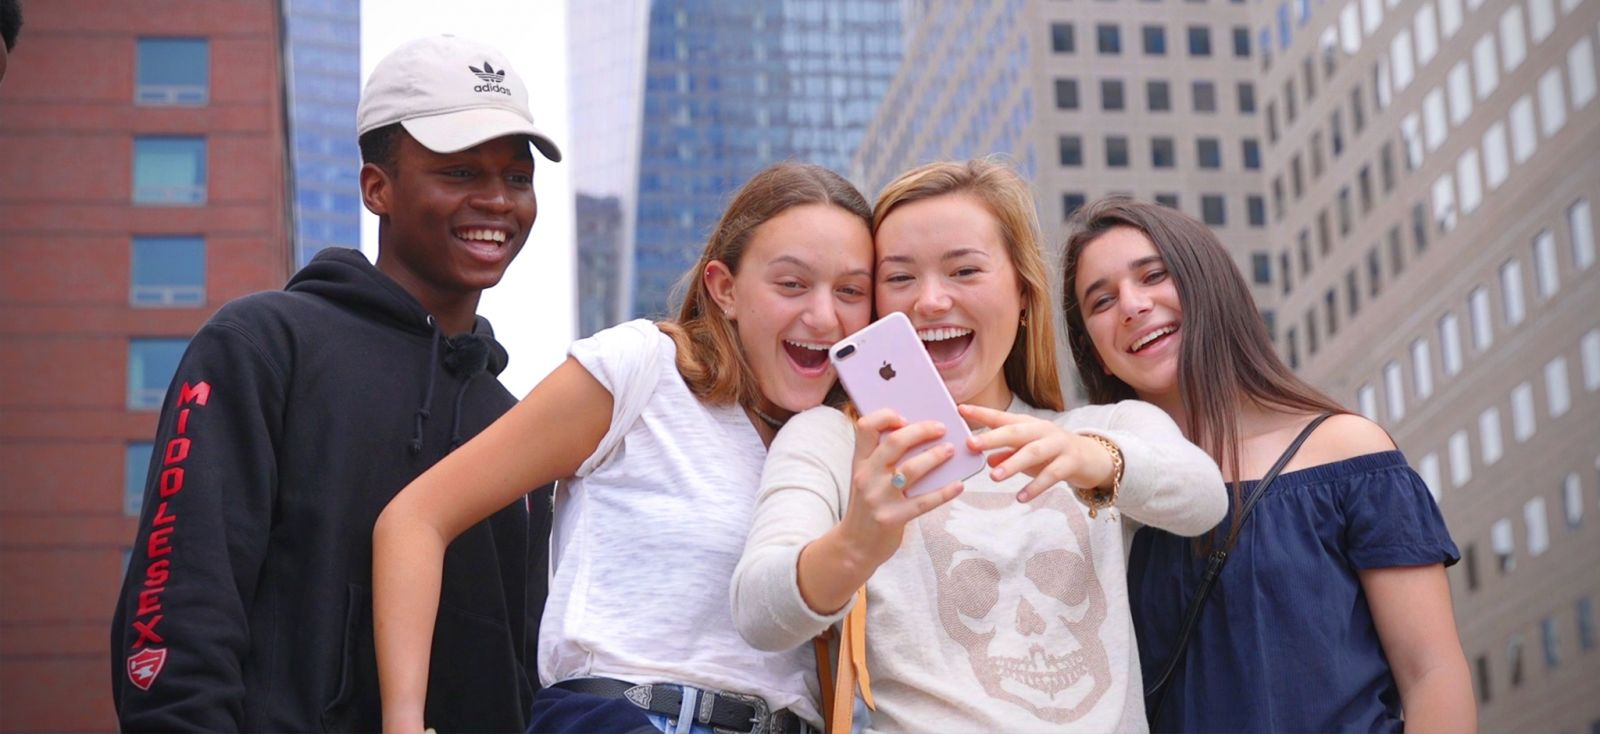 Ucla Summer Programs For High School Students 2020.Pre College Enrichment Programs Summer Discovery